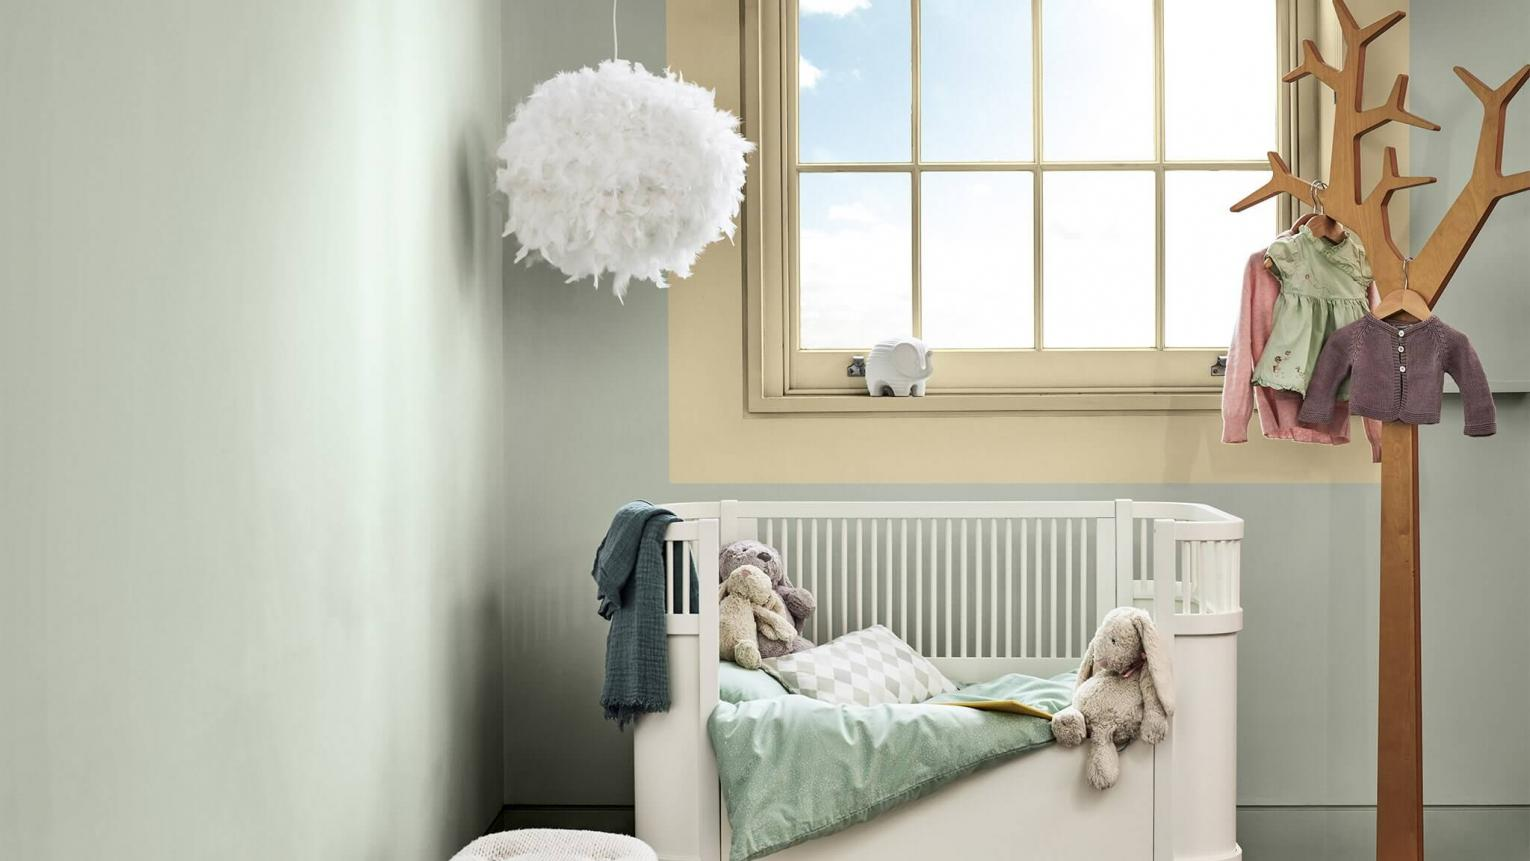 dulux-colour-futures-colour-of-the-year-2020-a-home-for-care-kidsroom-inspiration-thailand-51.jpg